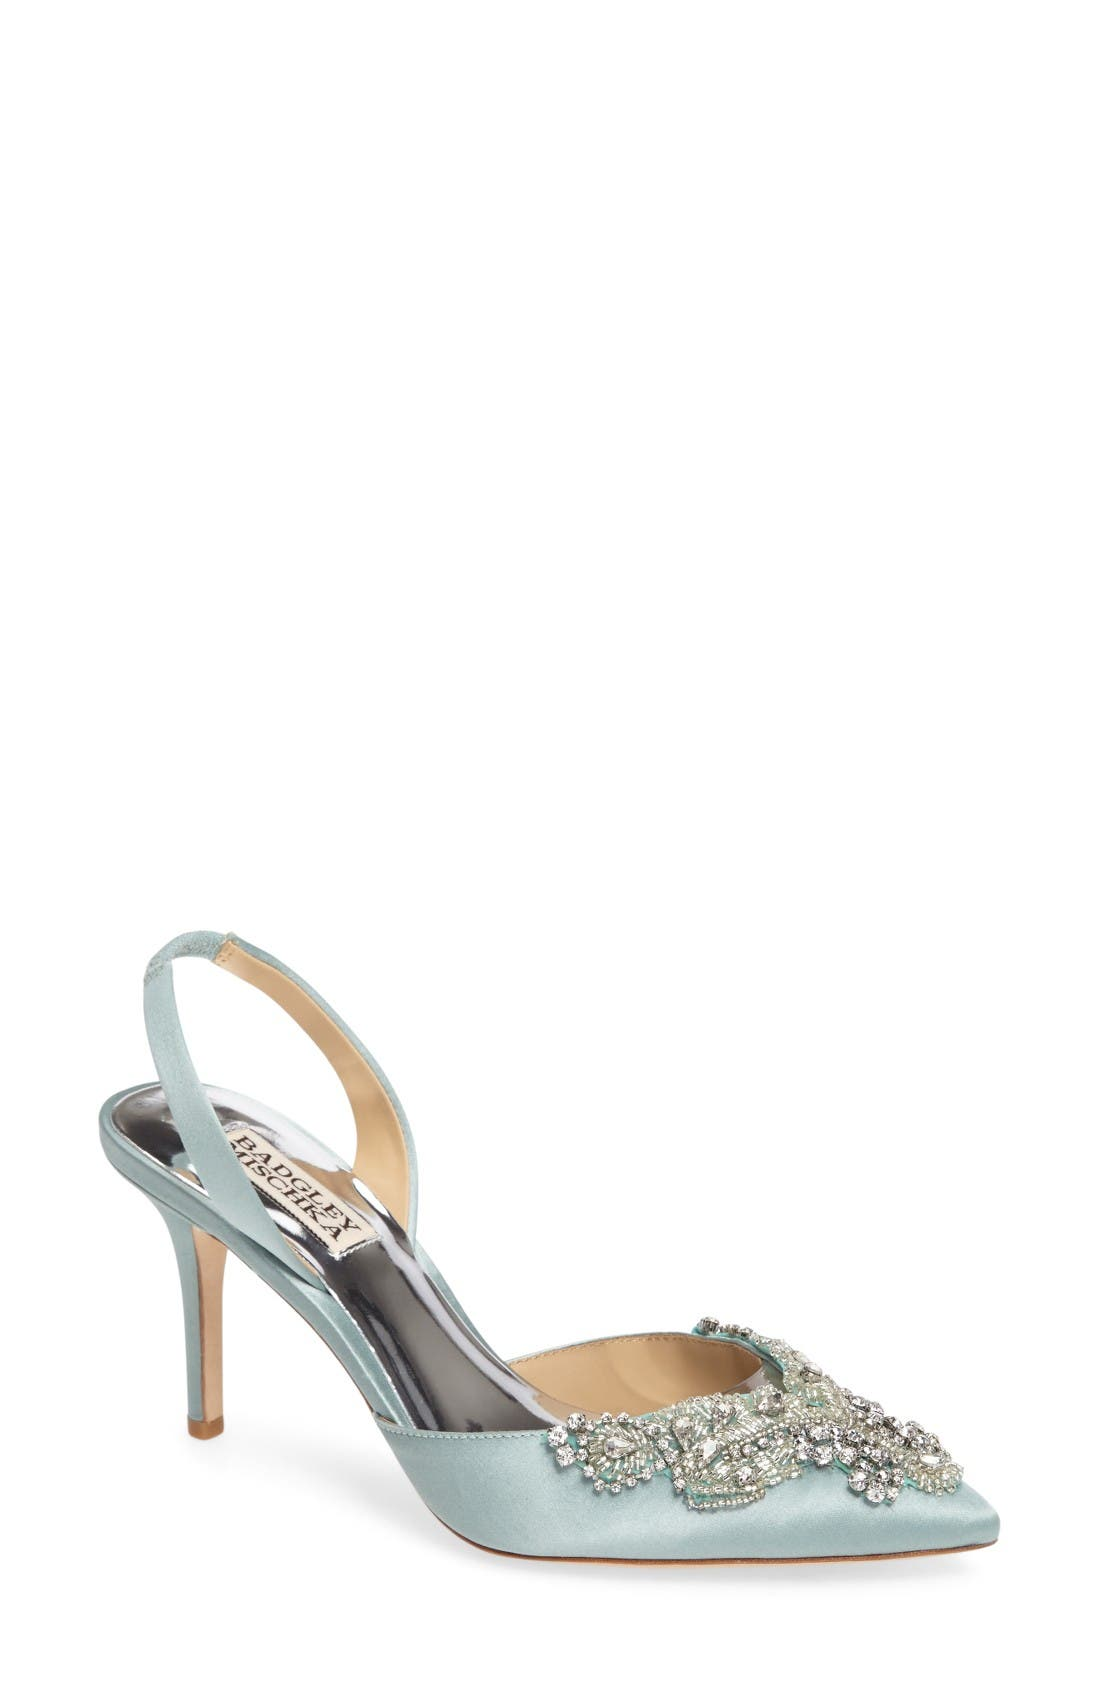 Alternate Image 1 Selected - Badgley Mischka Barnes Crystal Embellished Slingback Pump (Women)